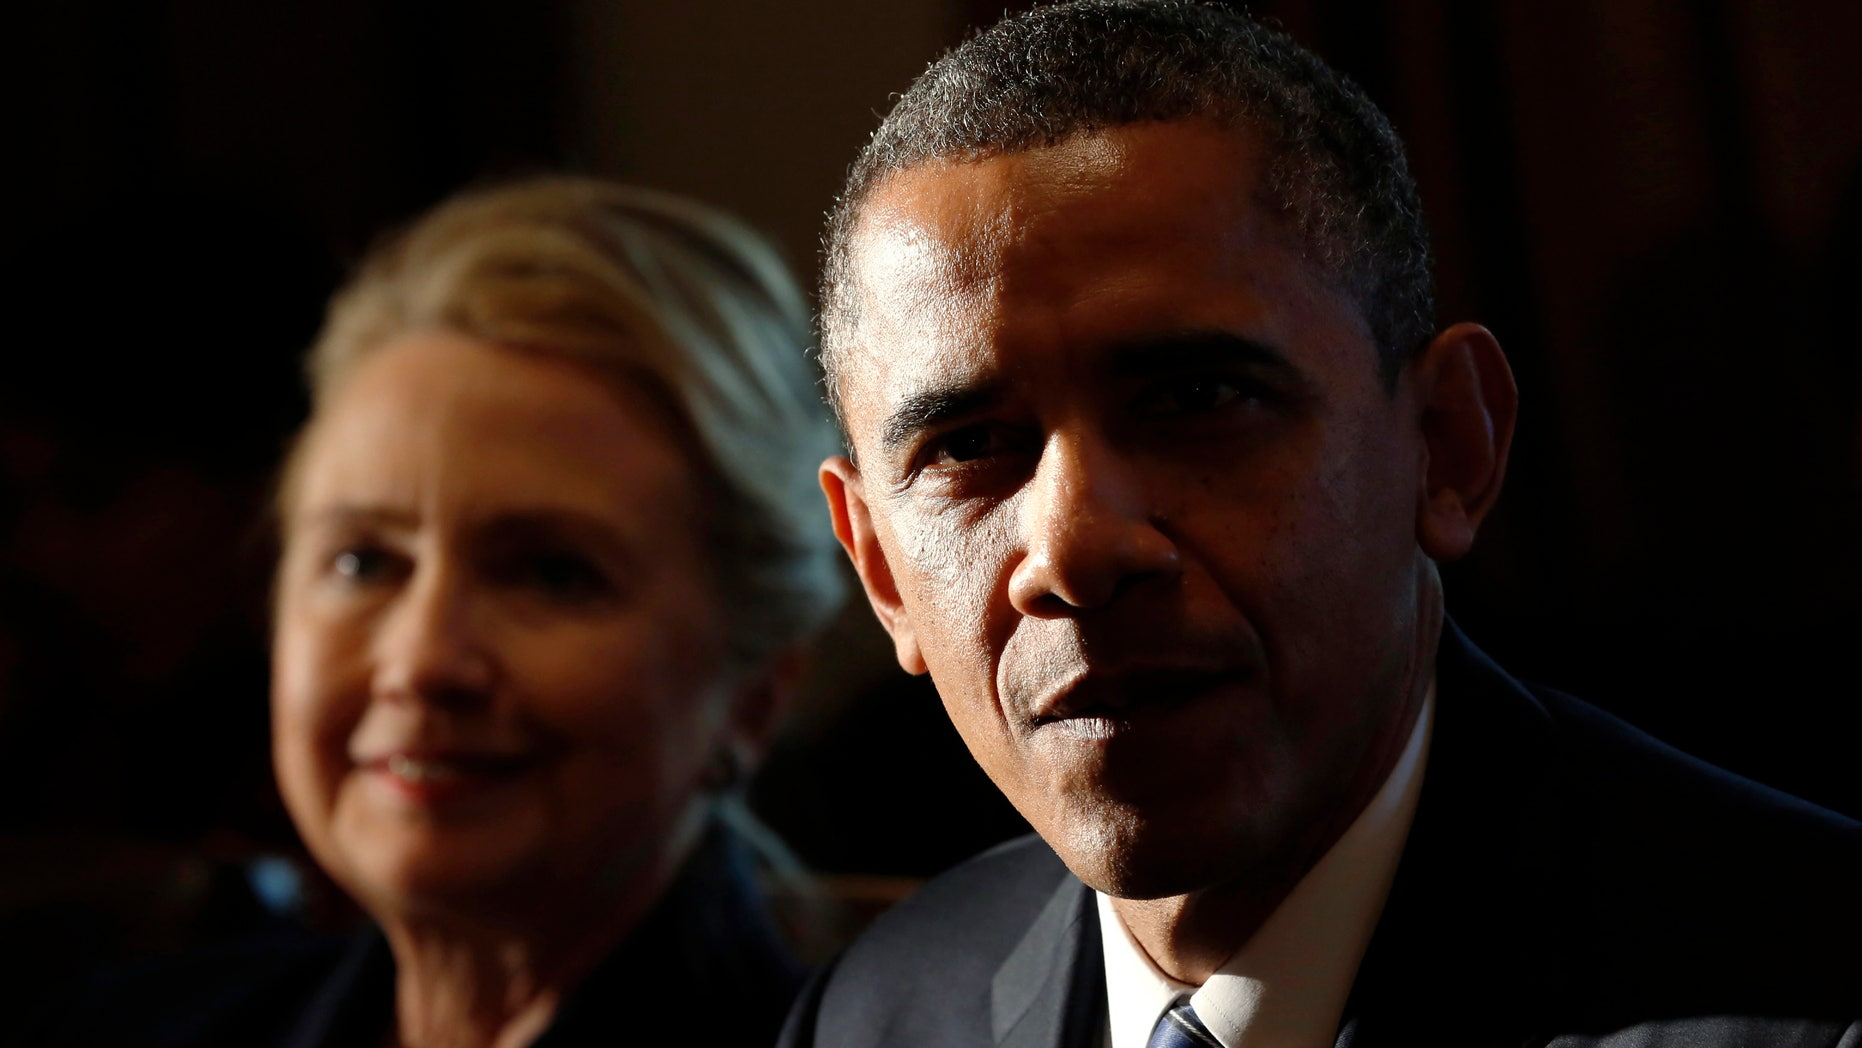 FILE -- President Barack Obama speaks during a meeting with members of his cabinet at the White House in Washington Nov. 28, 2012. Seated beside him is Secretary of State Hillary Clinton. (REUTERS/Kevin Lamarque)